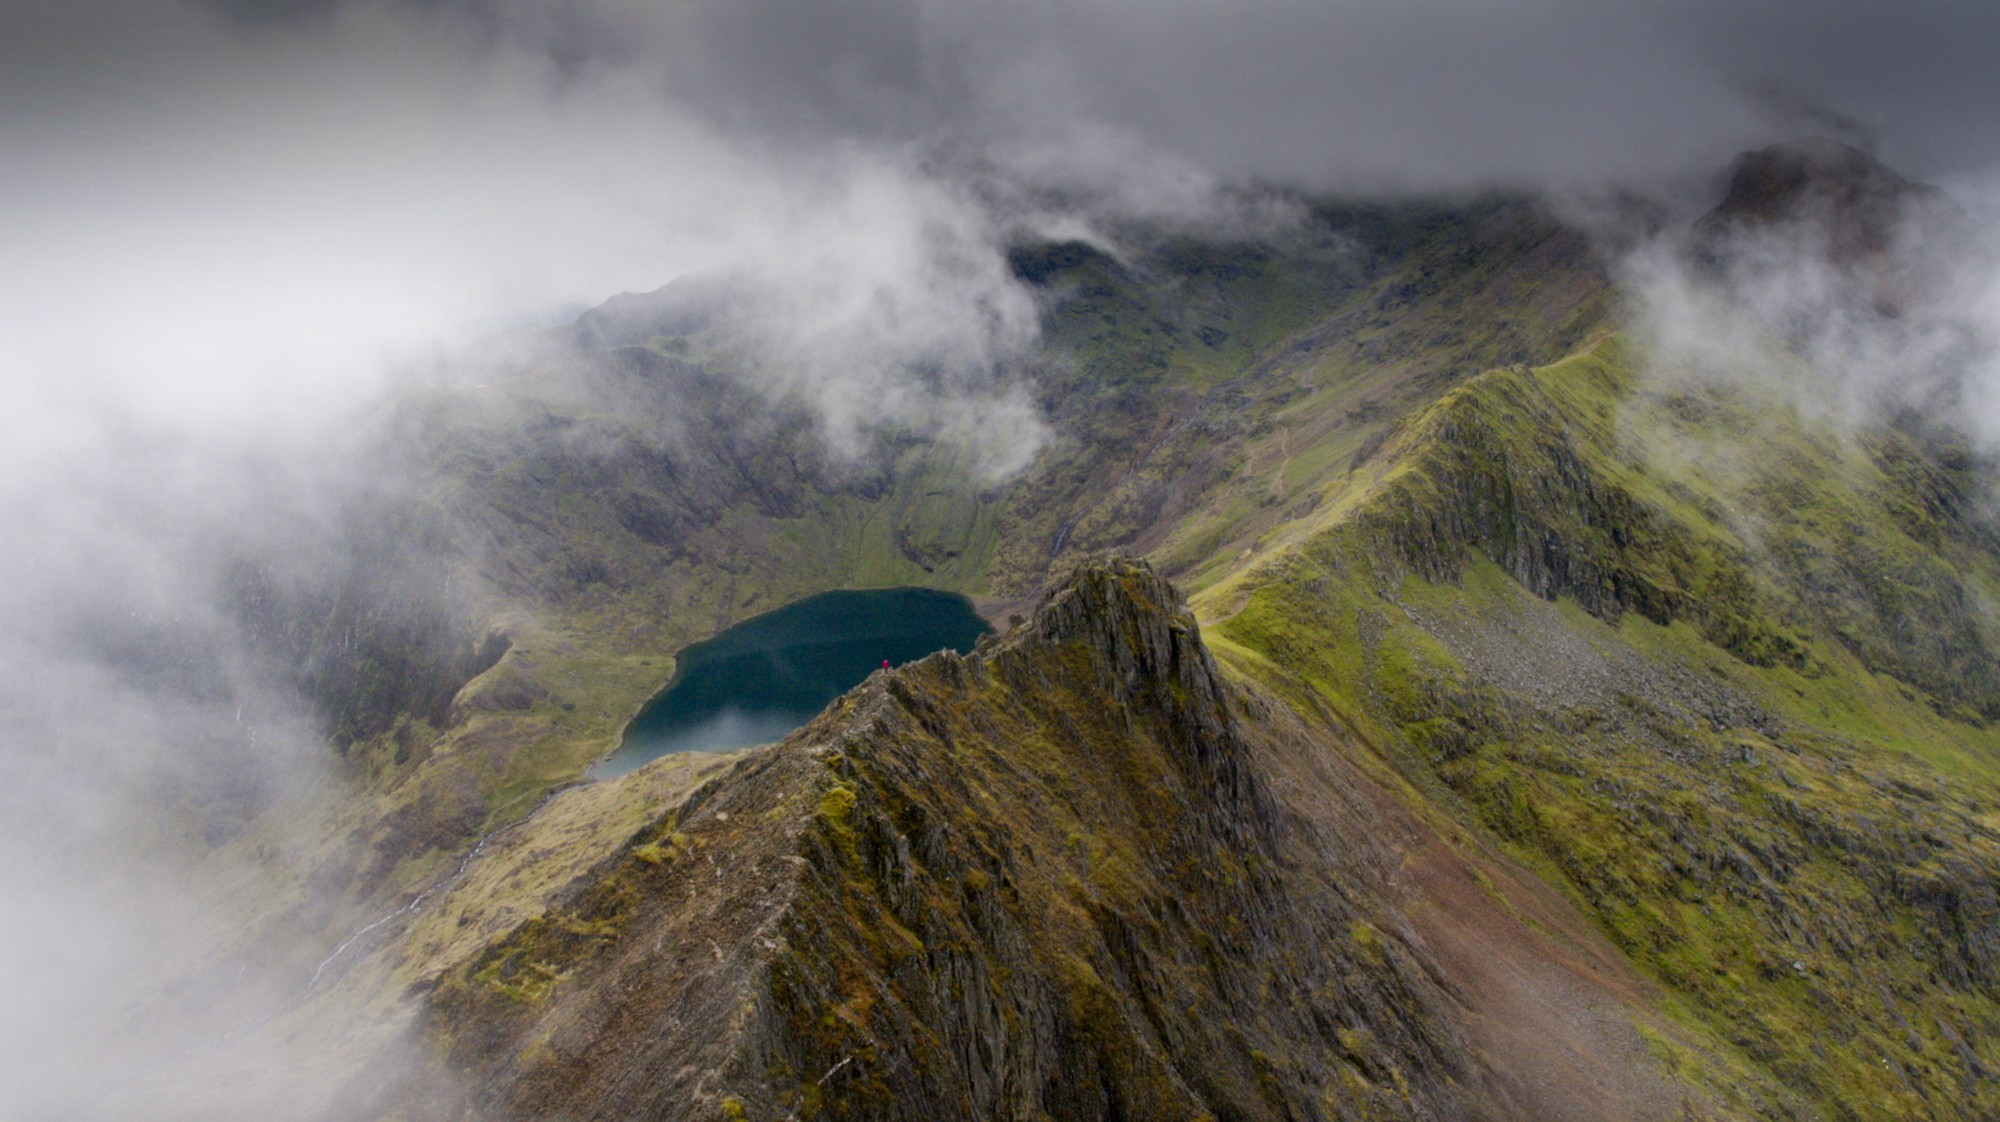 Filming on Crib Goch, Snowdon